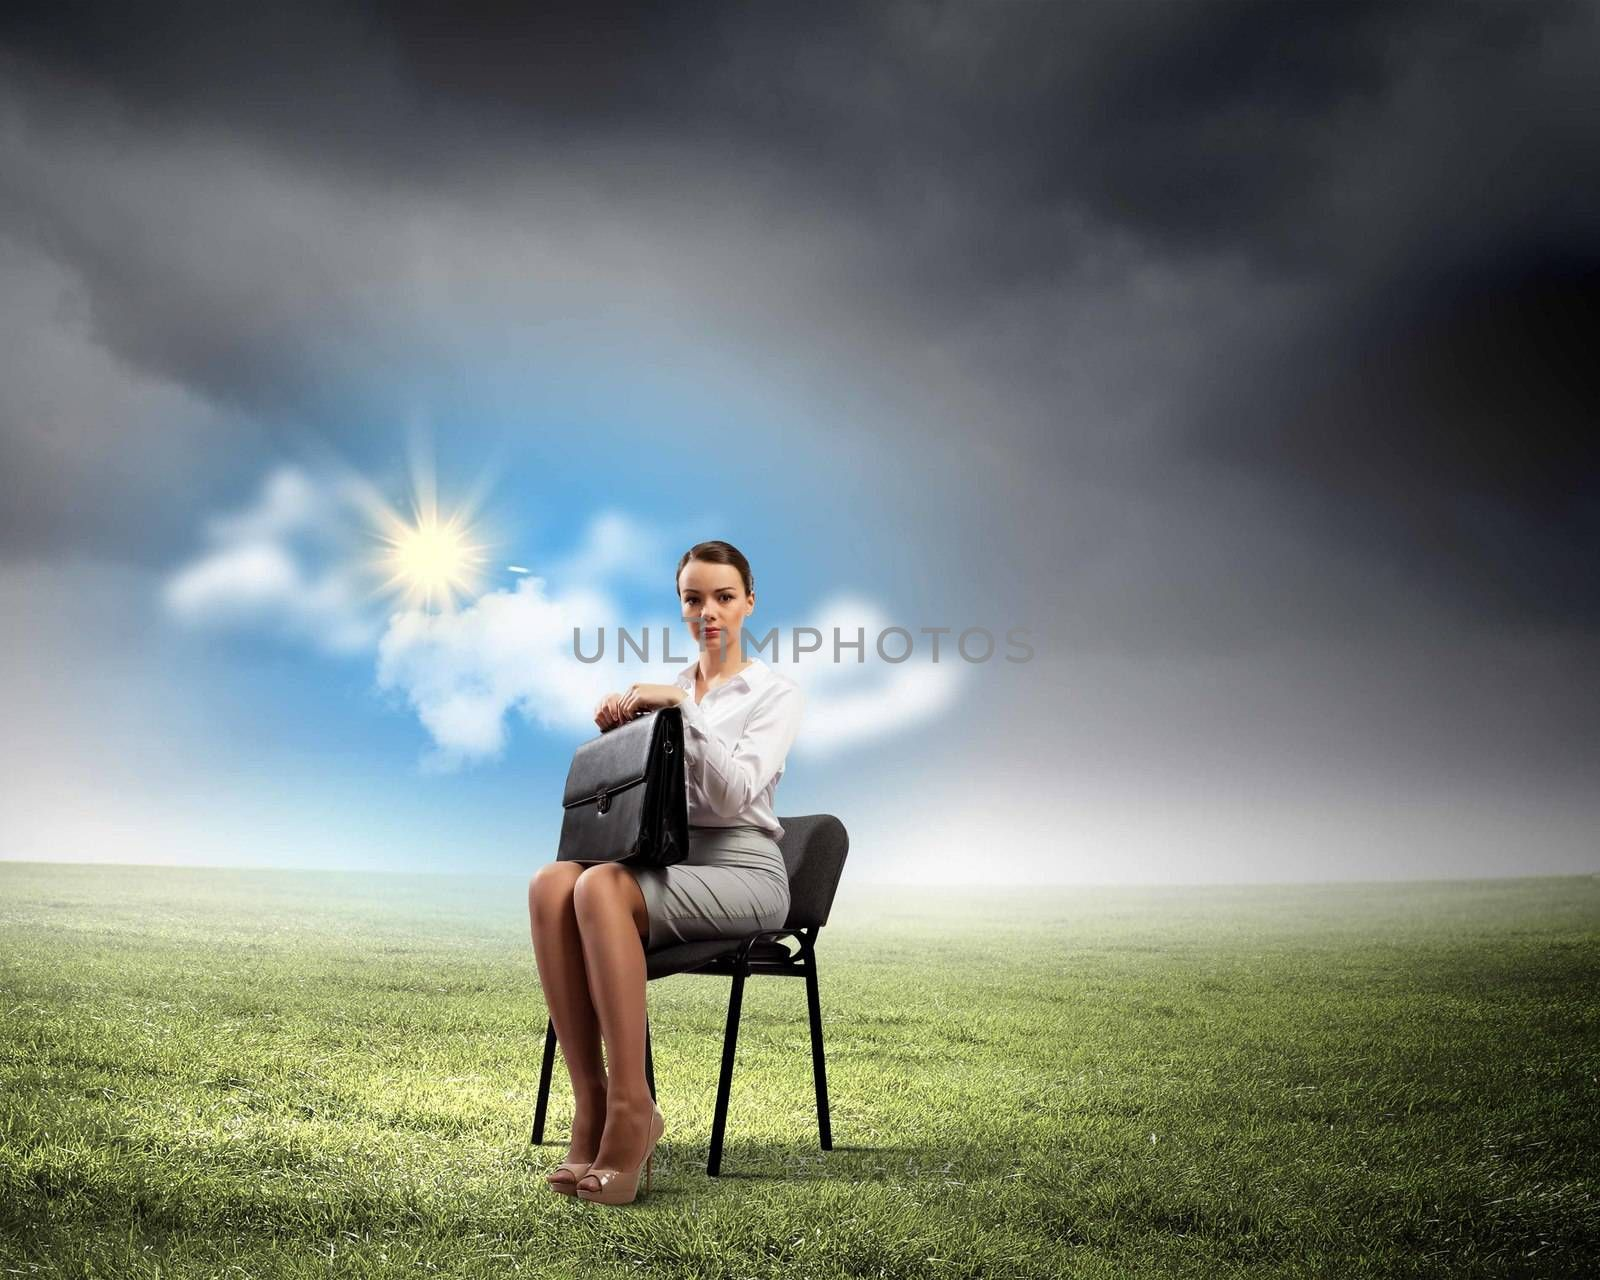 Image of young businesswoman sitting in chair holding suitcase